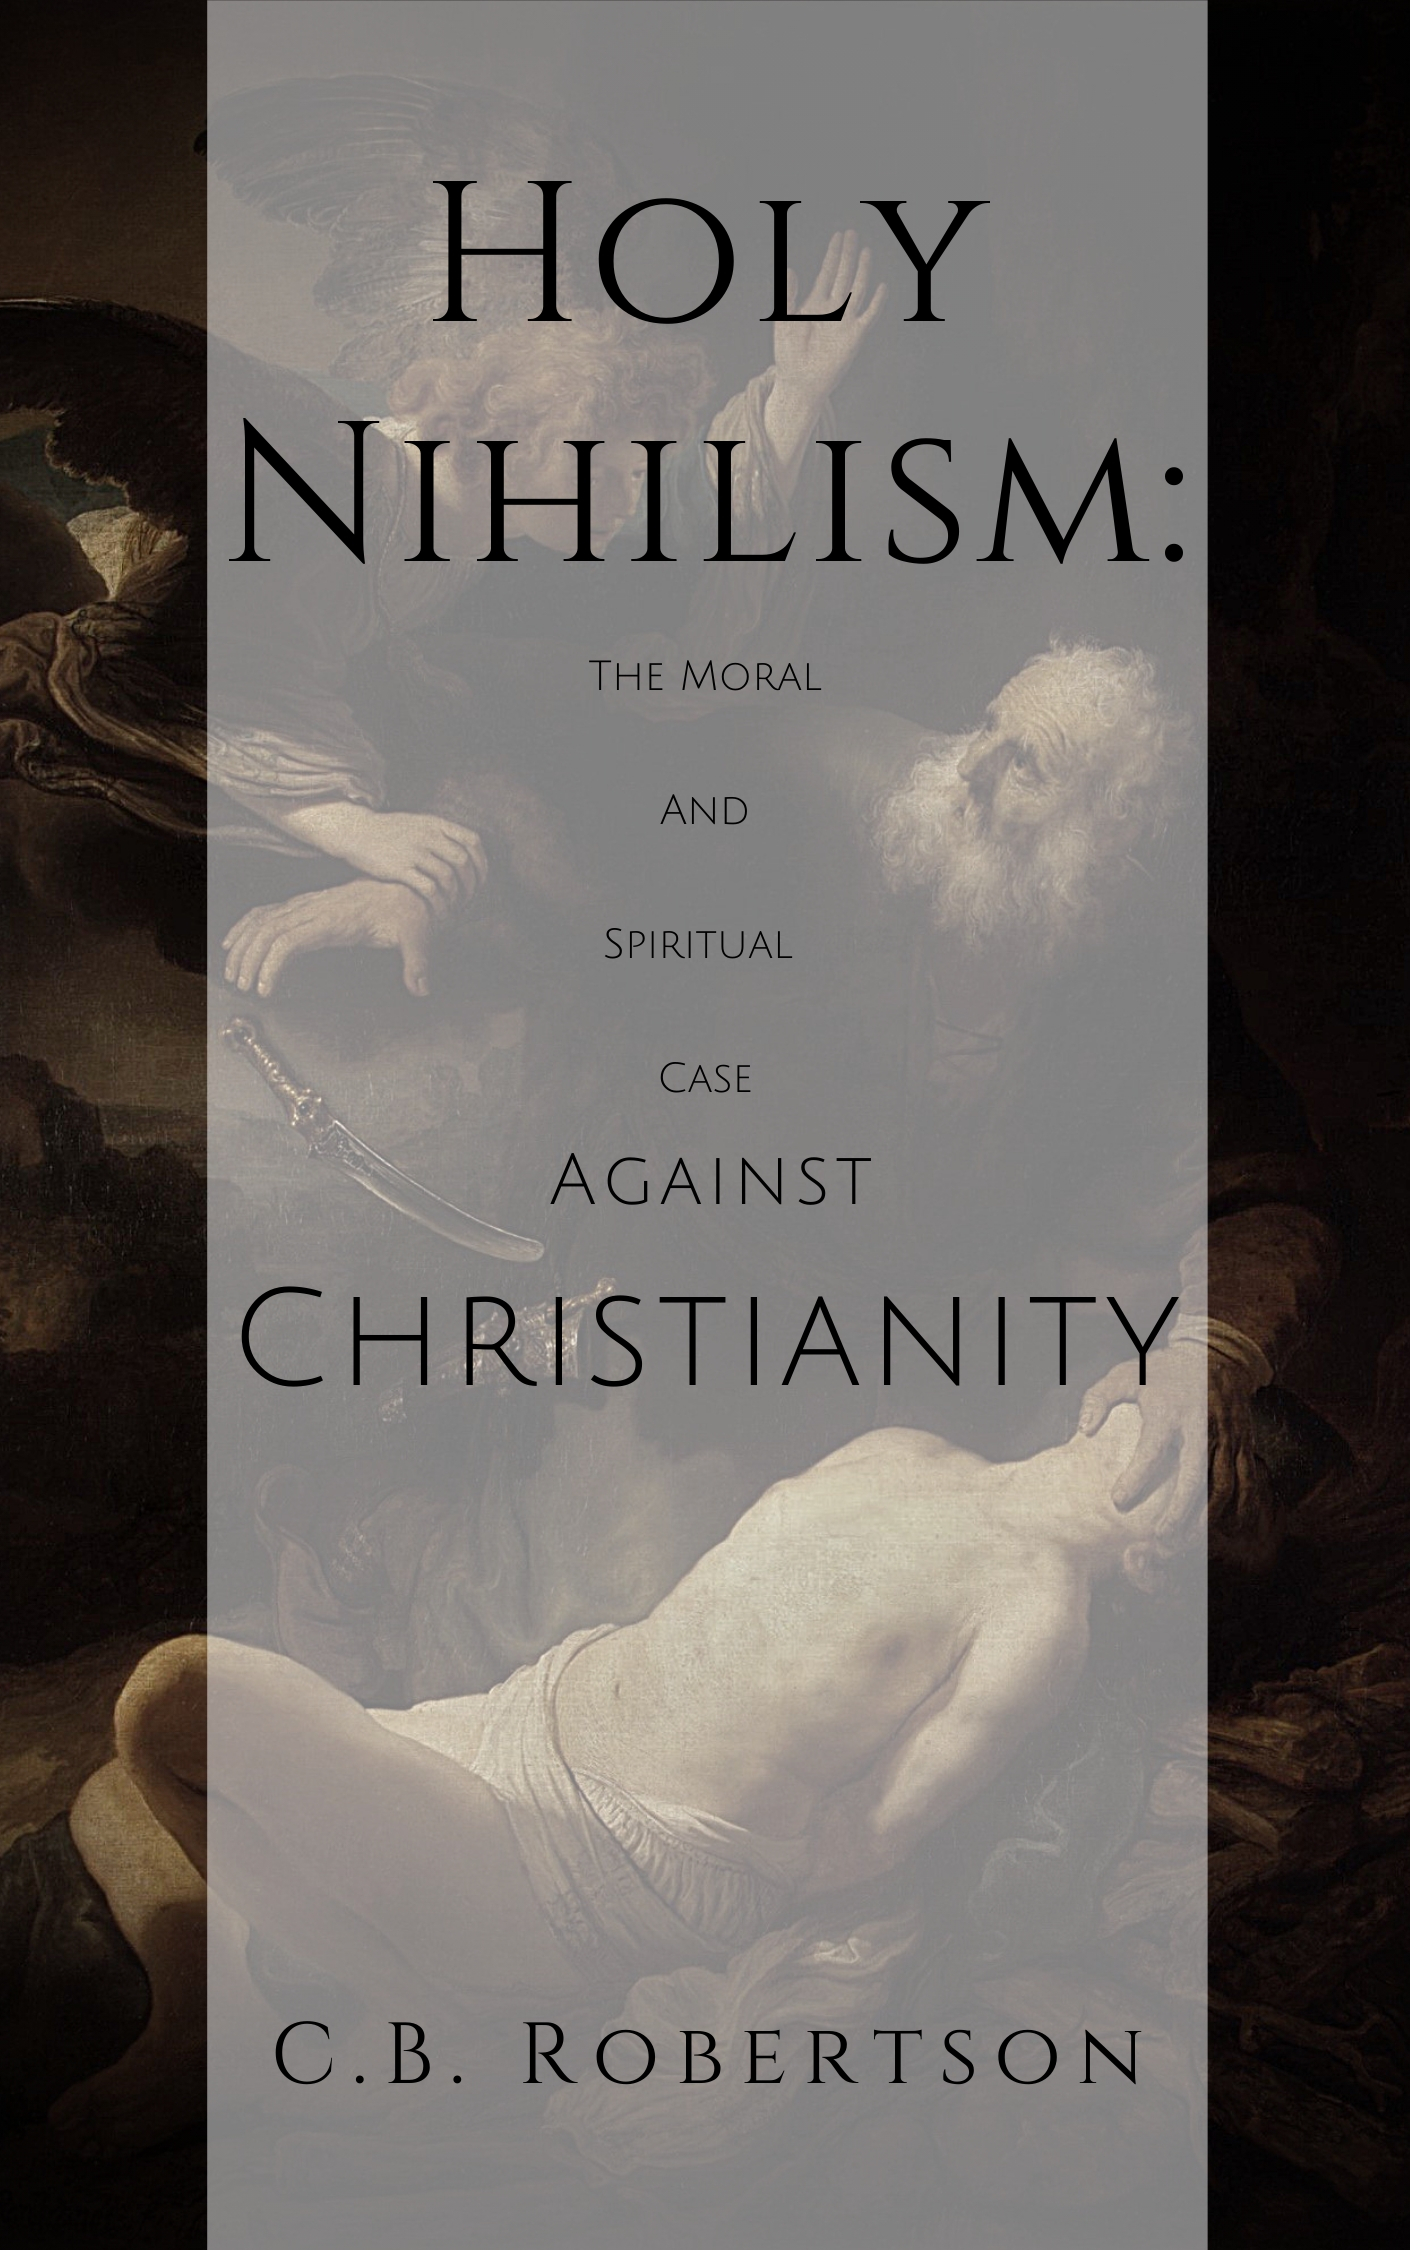 NEW: Holy Nihilism Published